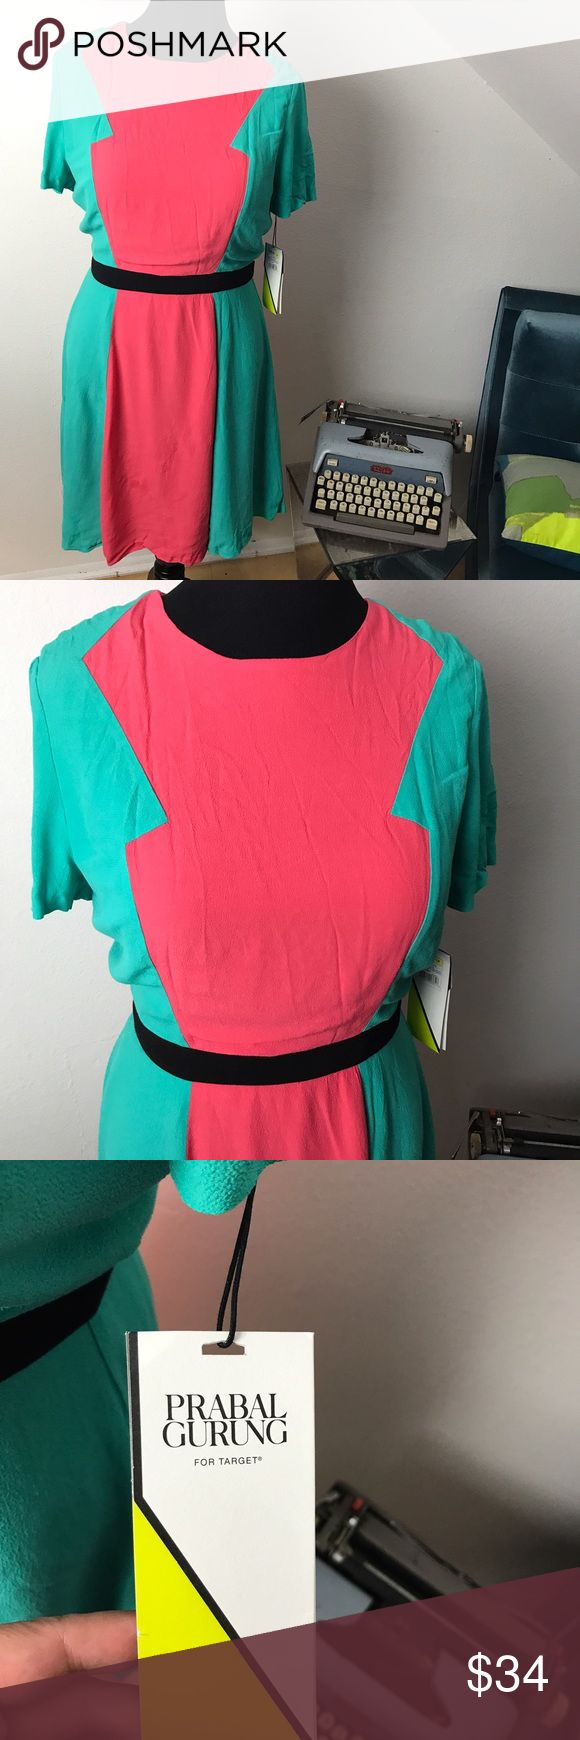 NWT Prabel Gurung for Target Dress Designer collection for Target Coral and Seafoam dress. (My mannequin has a 39' bust, 31' waist. Prabal Gurung for Target Dresses